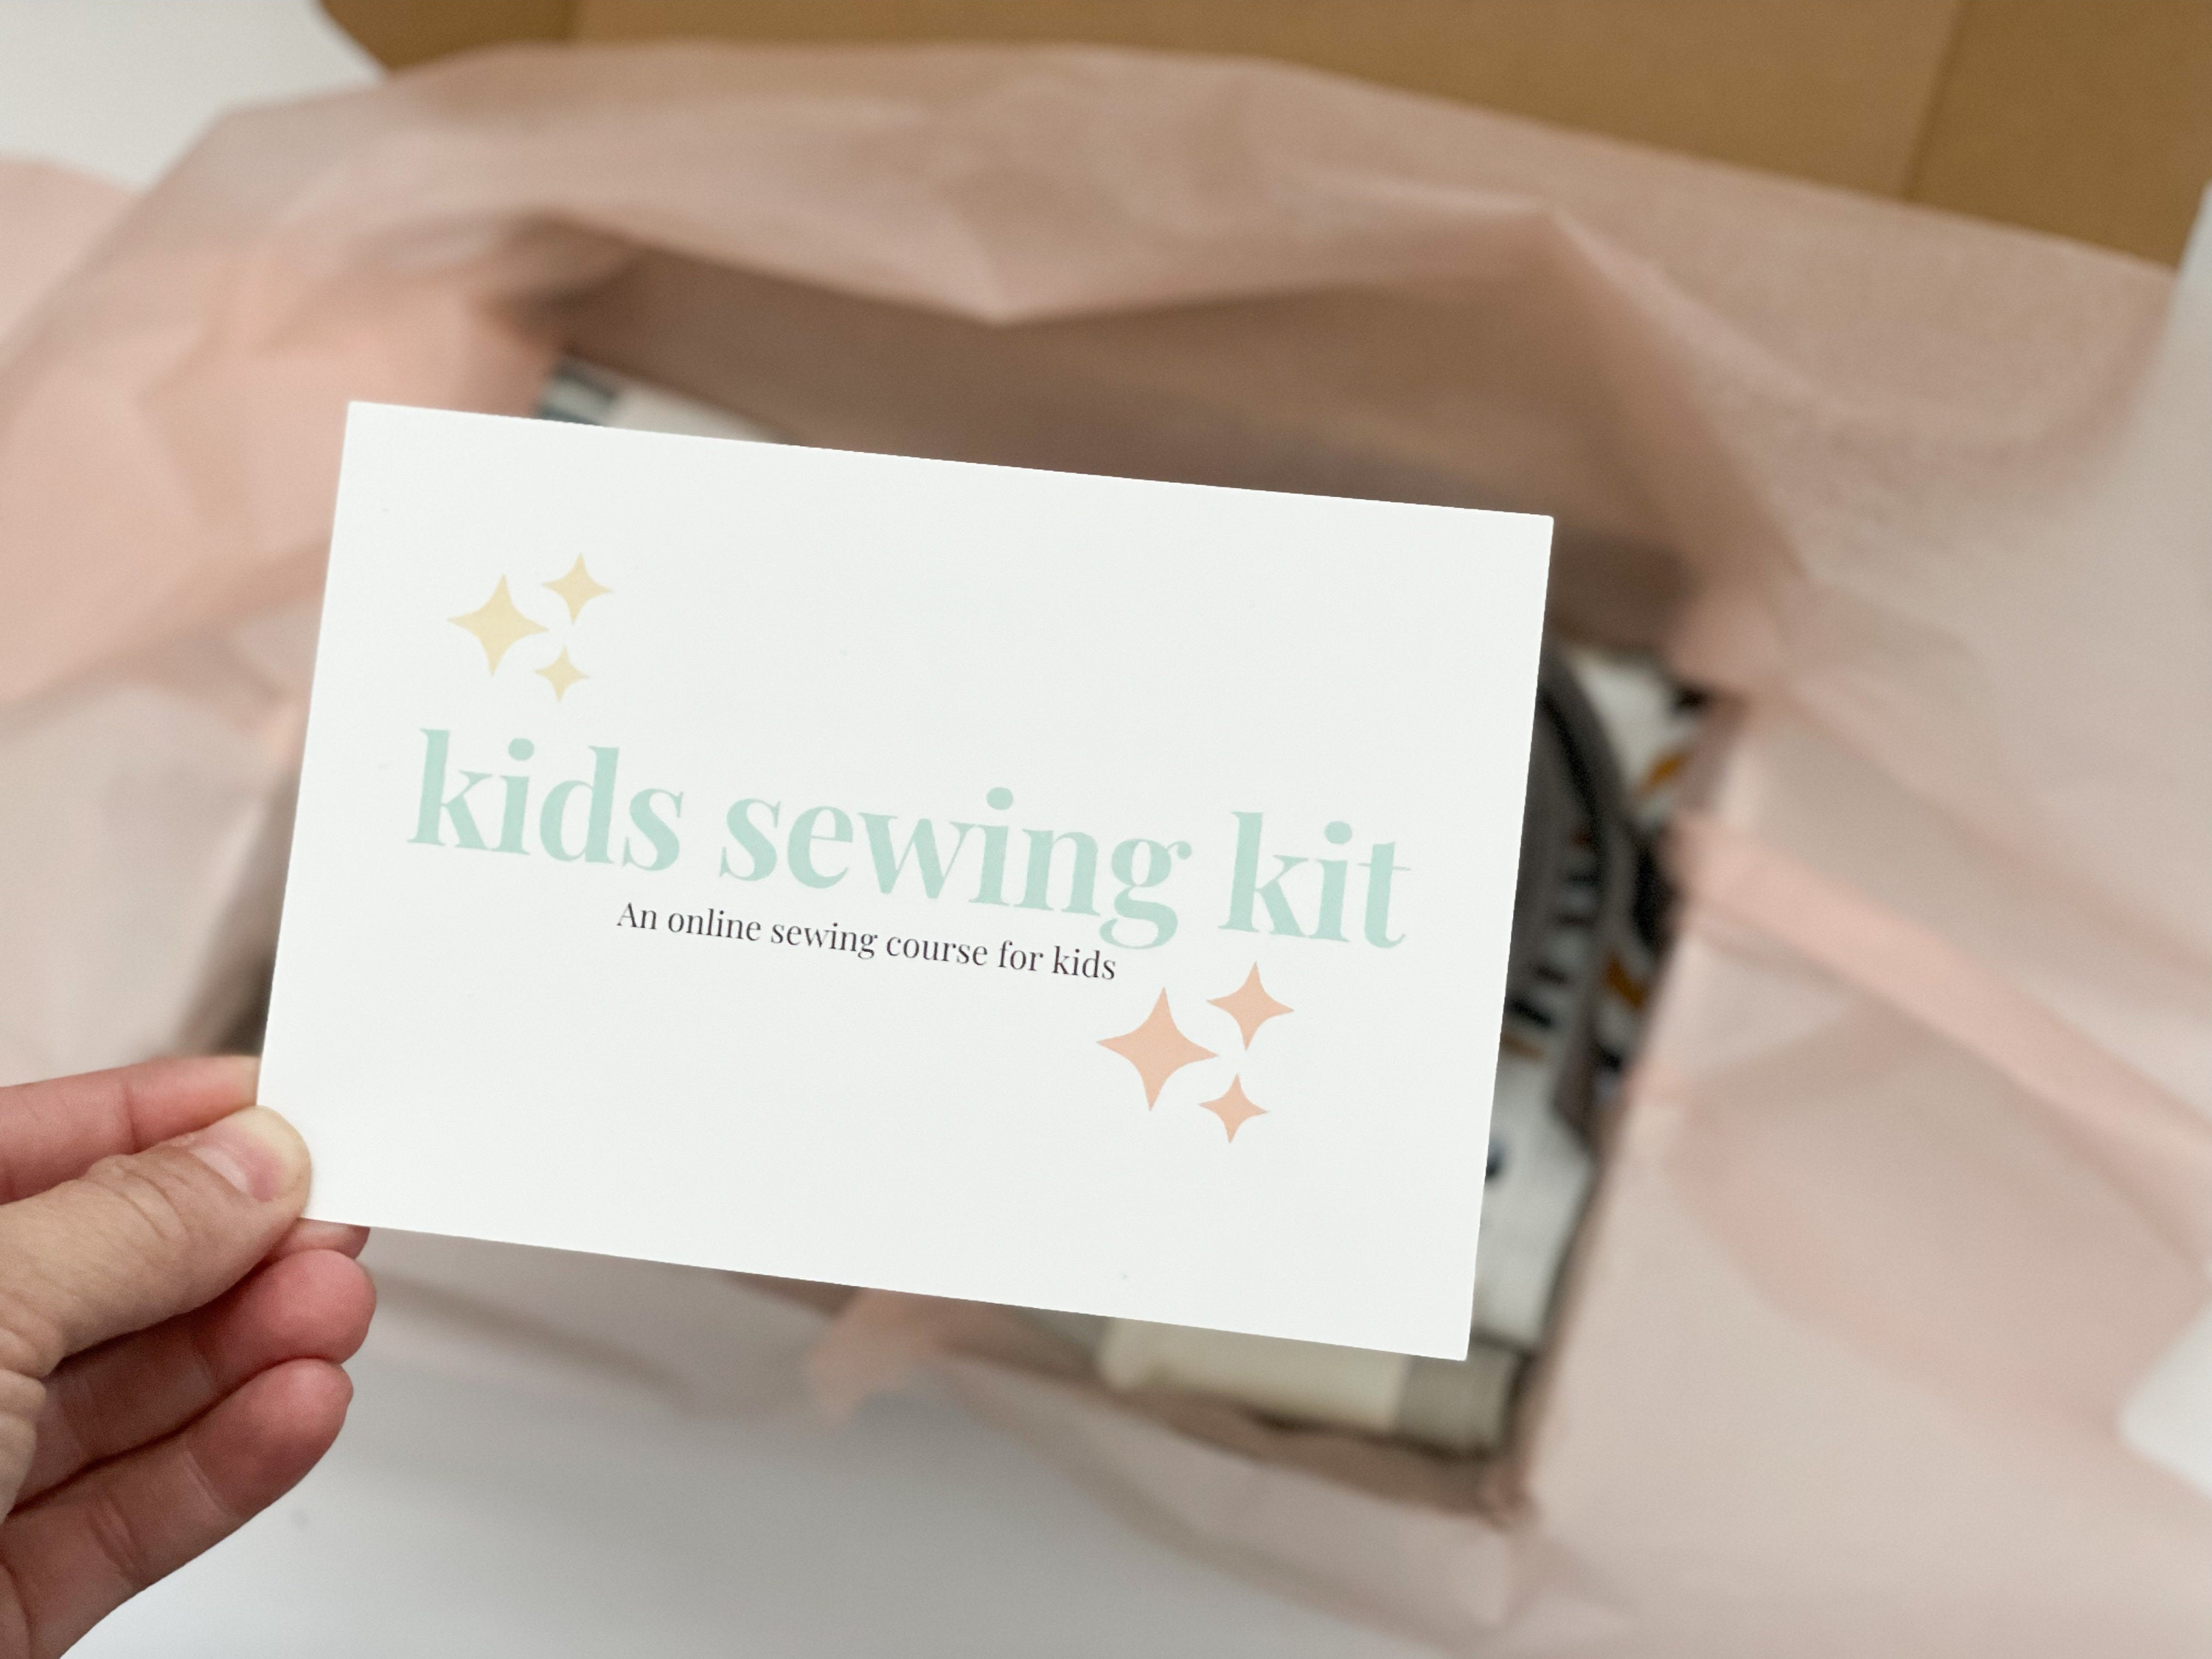 sewing box, sewing, sewing machine, sewing pattern, christmas gifts, sewing gift, sewing kit, sewing gifts, fabric supplies, sewing supplies kit